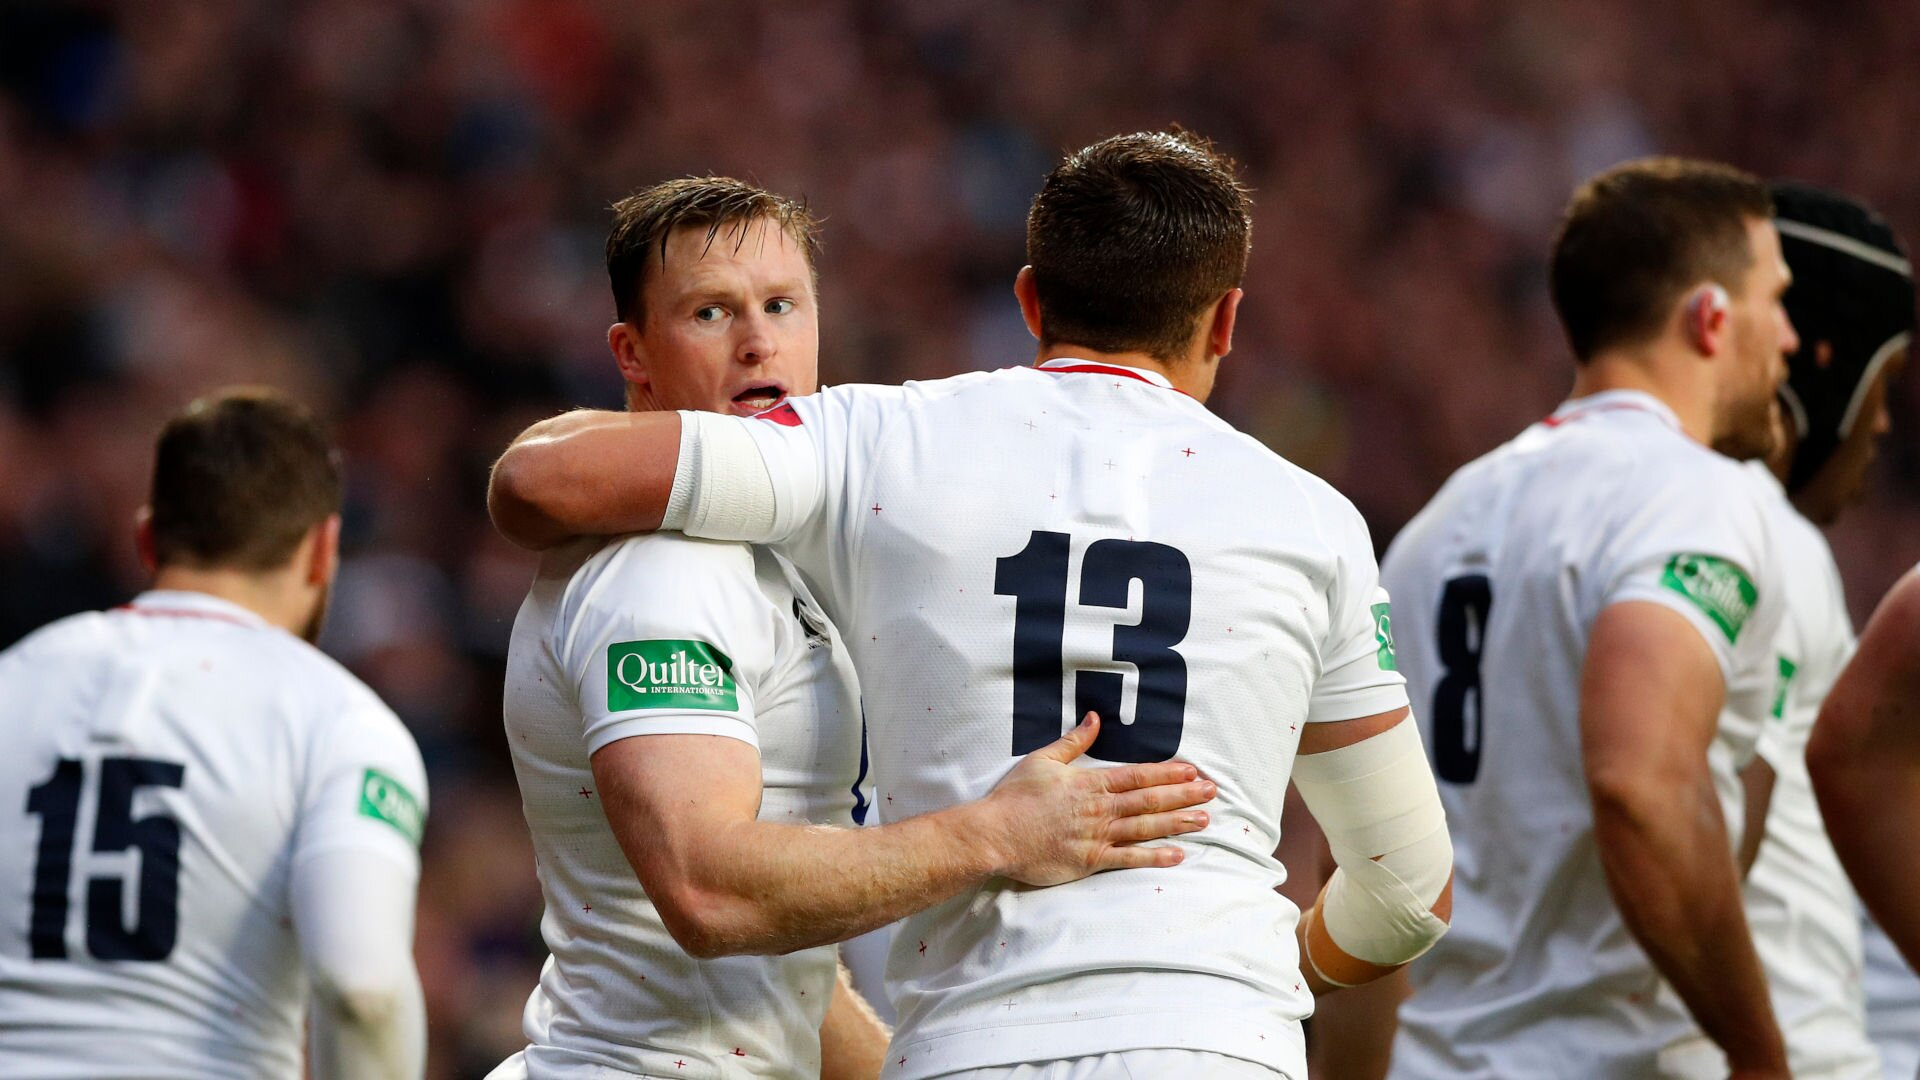 The All Blacks winger Chris Ashton has 'no hesitation in saying' was the toughest he ever faced